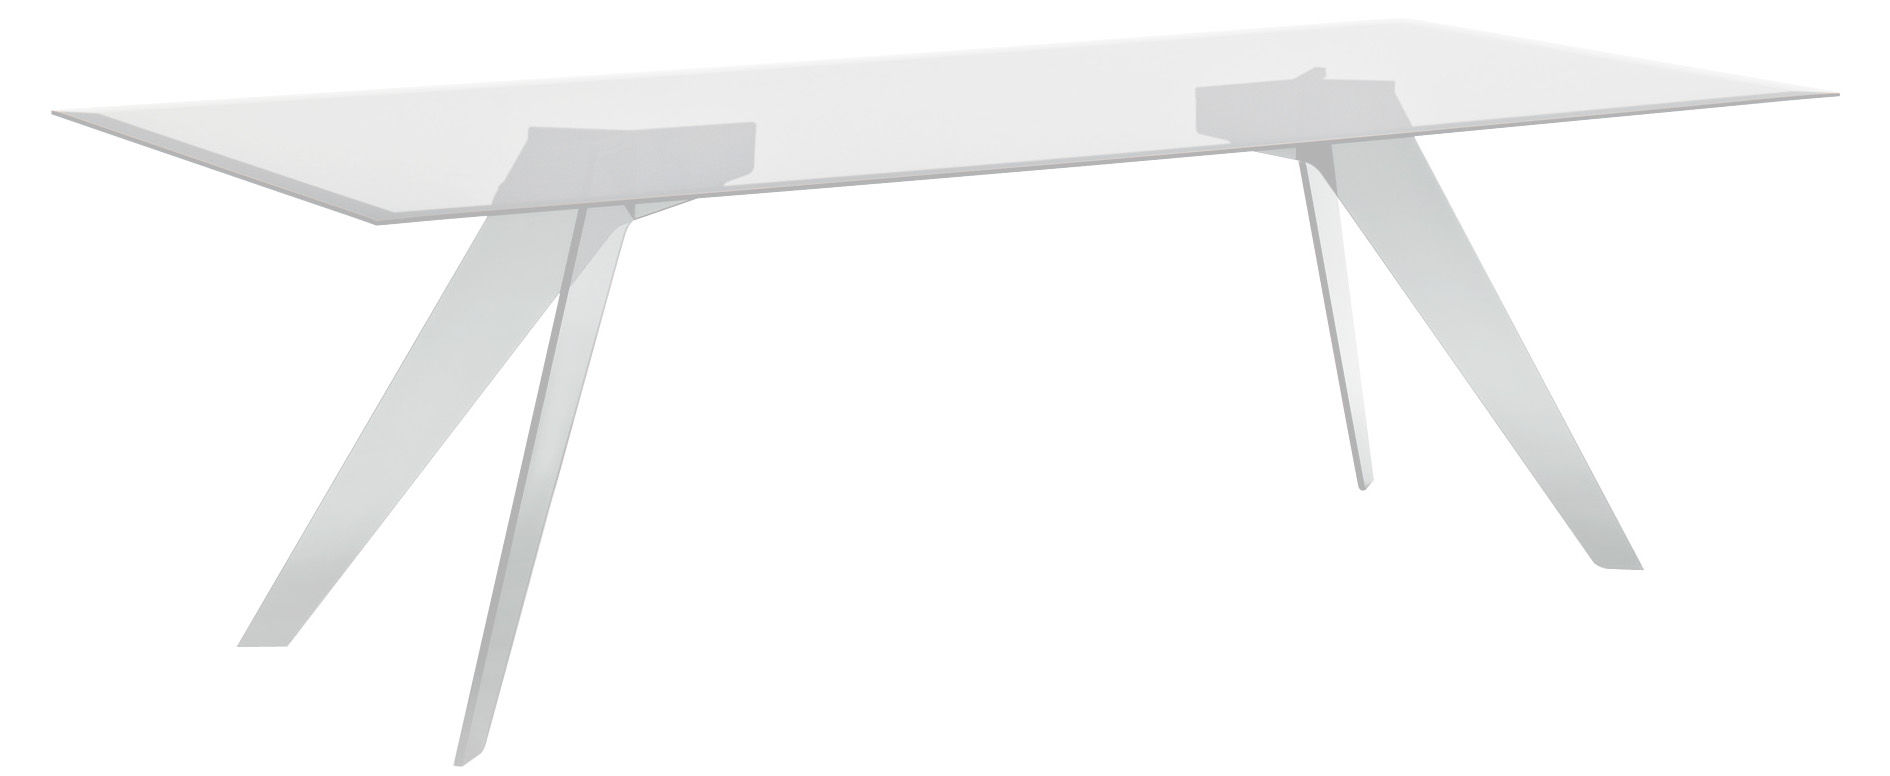 Furniture - Dining Tables - Alister Rectangular table - 210 x 90 cm by Glas Italia - 210 x 90 cm - Transparent glass - Glass